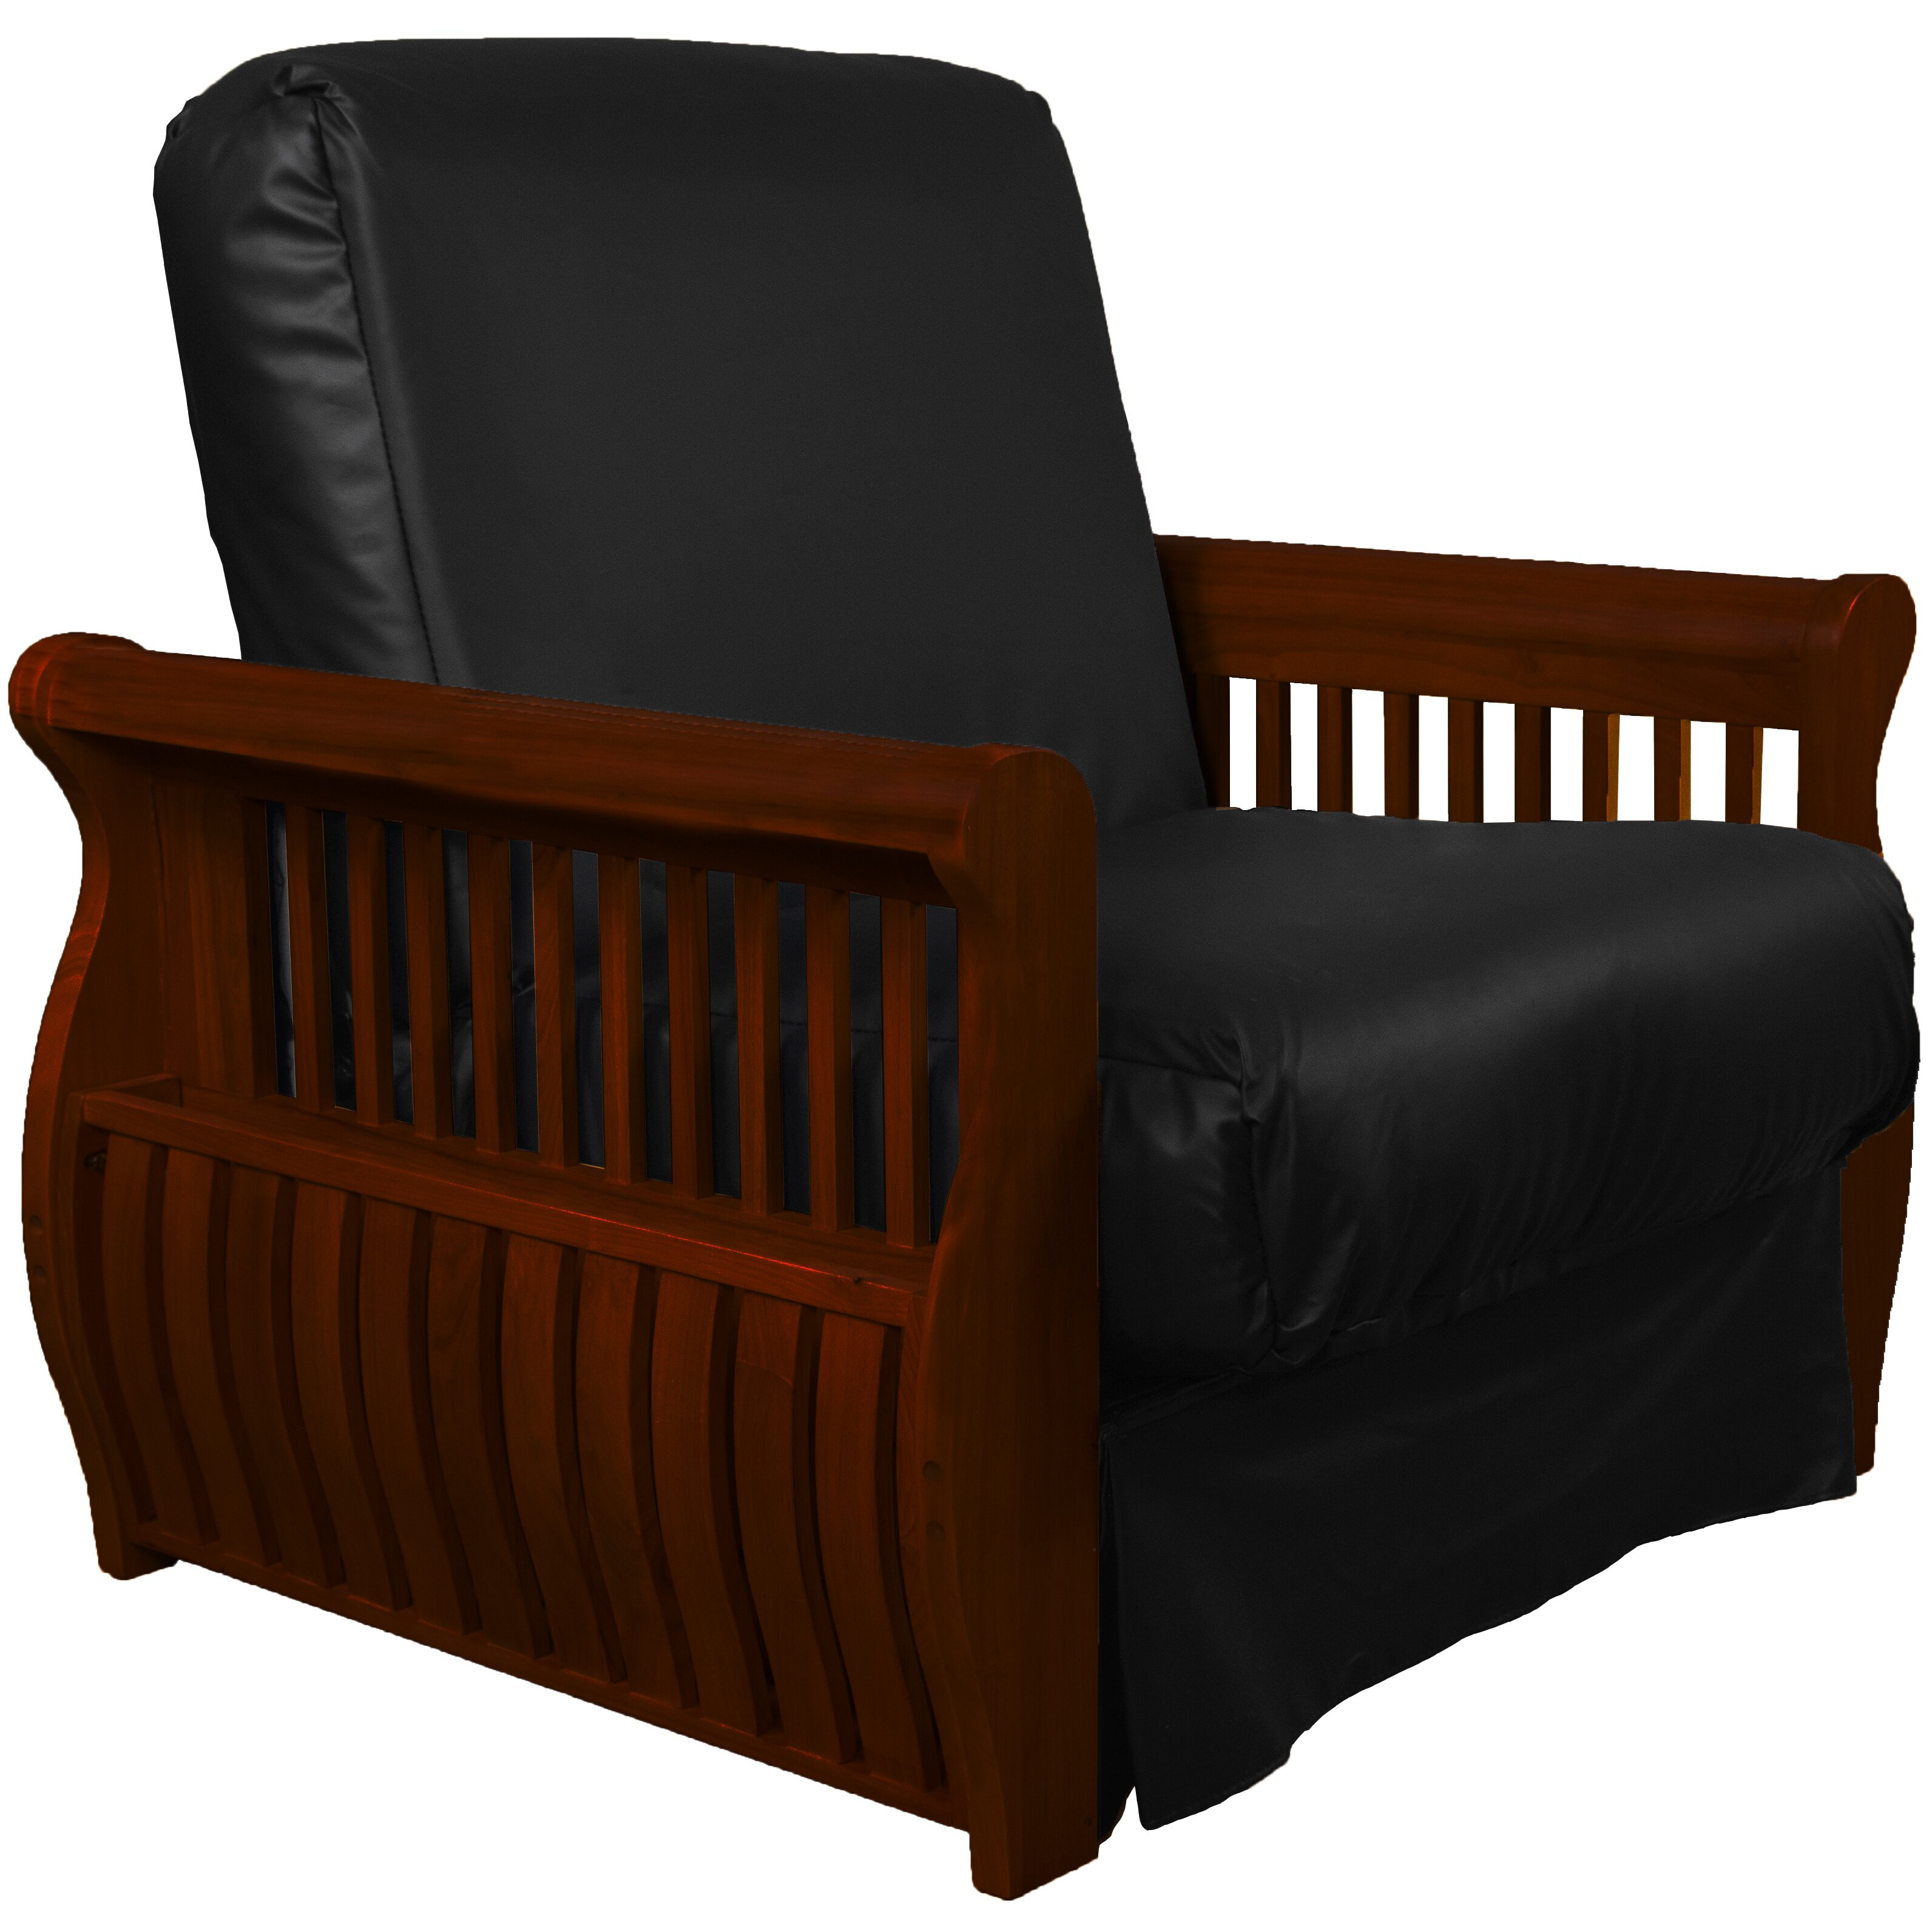 Epic Furnishings Llc Concord Futon Chair Wayfair